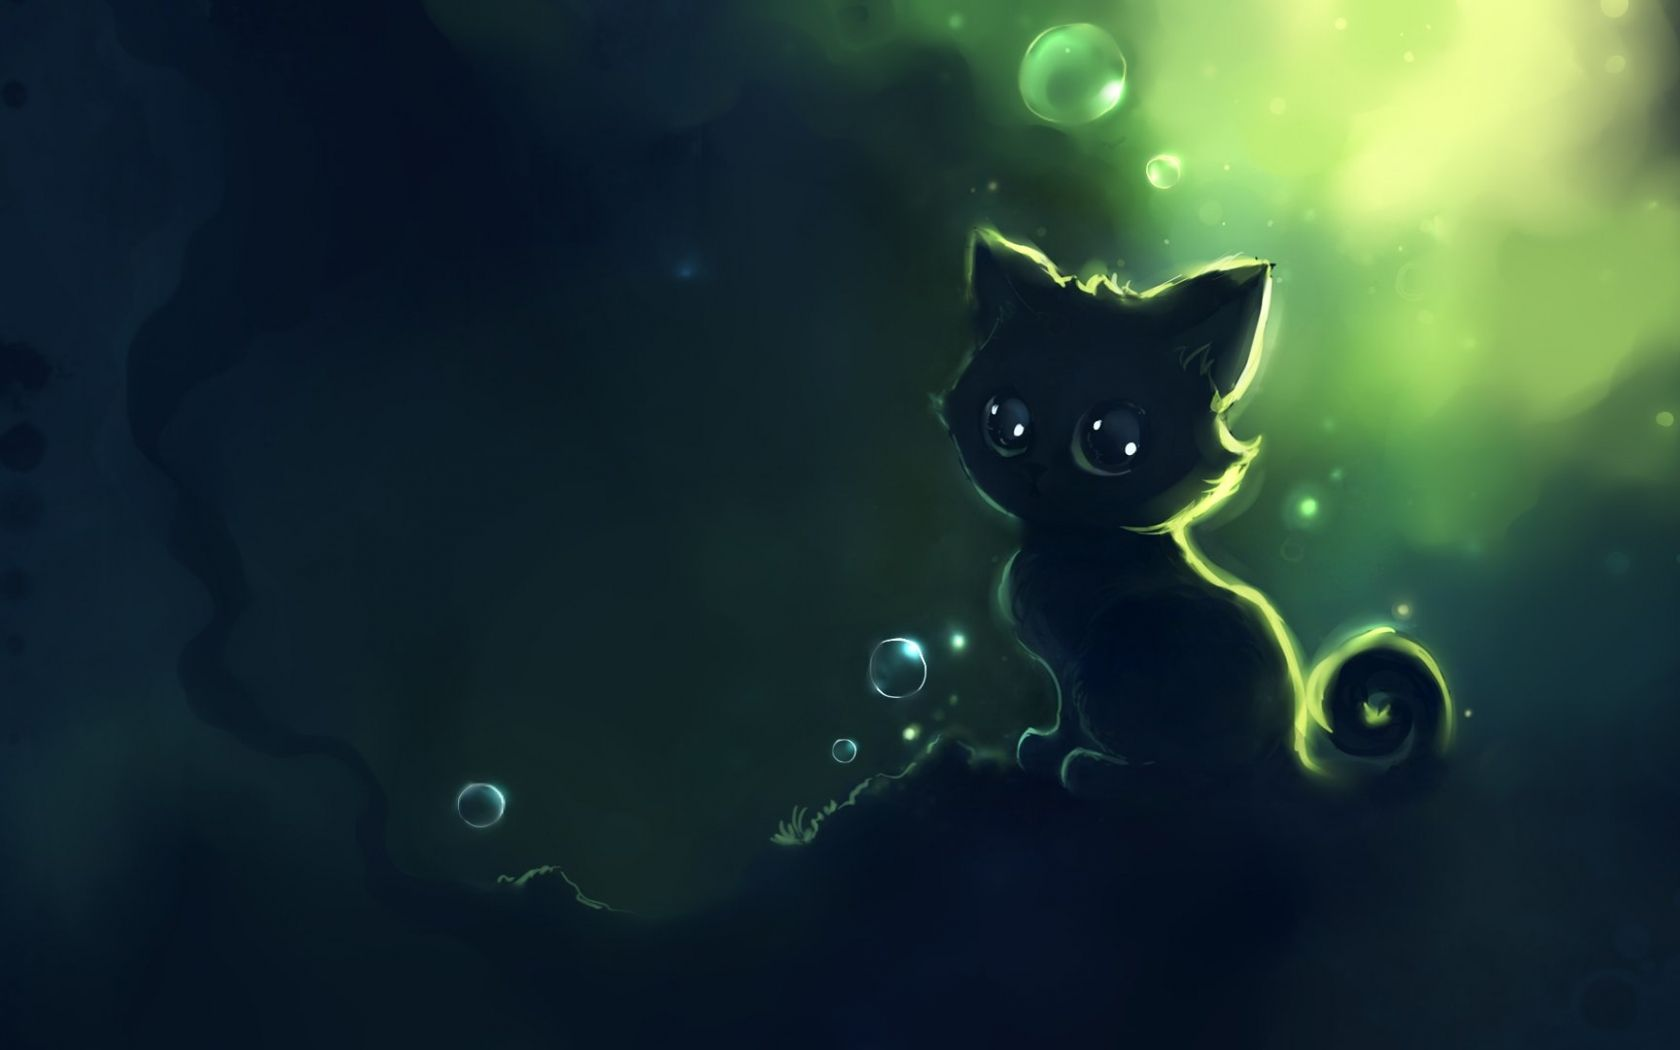 Anime Hd Green Wallpapers Wallpaper Cave